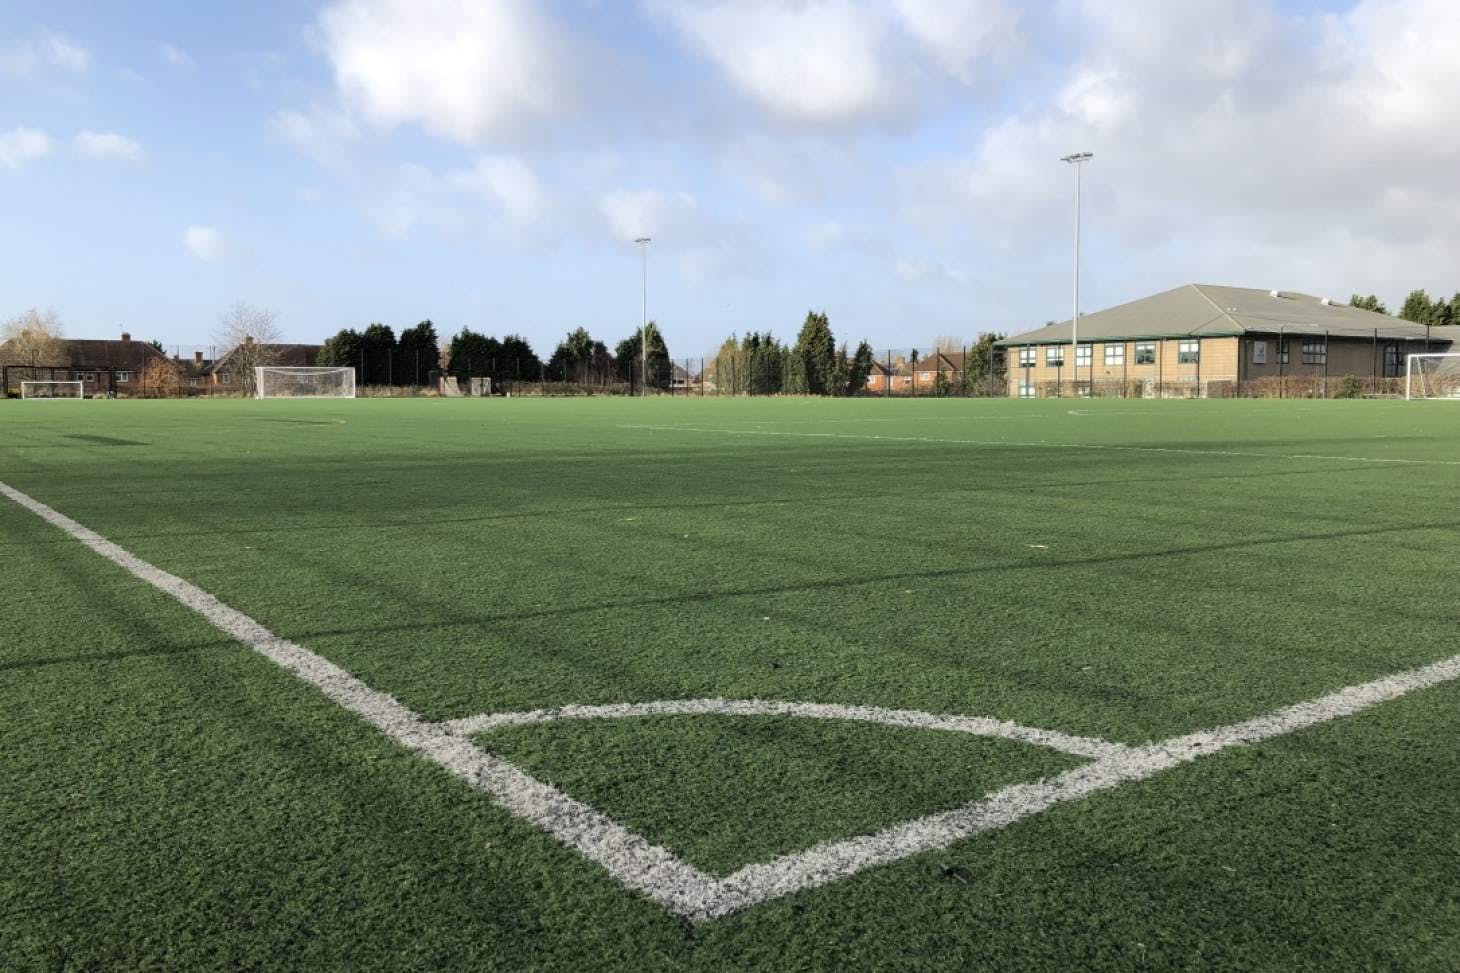 John Madejski Academy (White Horse Federation) 11 a side | 3G Astroturf football pitch